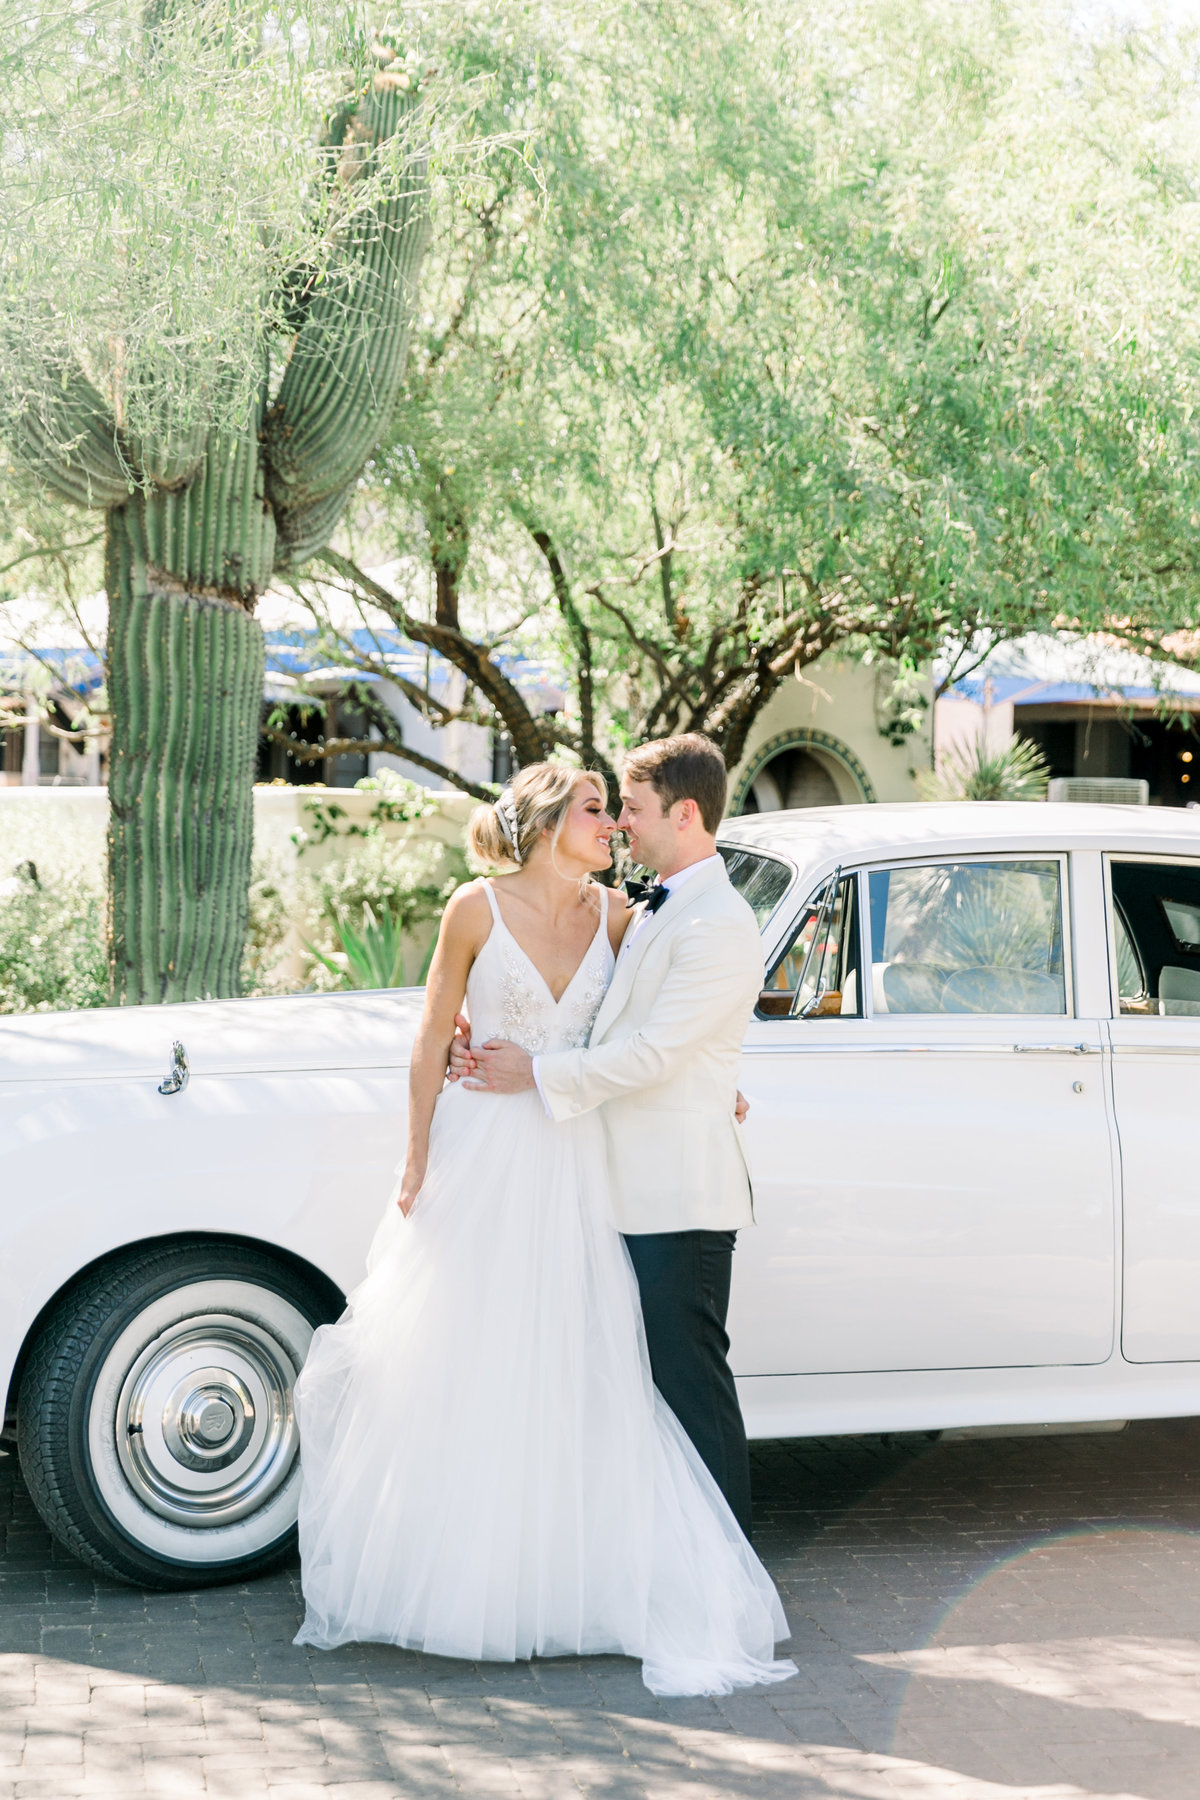 Karlie Colleen Photography - El Chorro Arizona Desert Wedding - Kylie & Doug-300